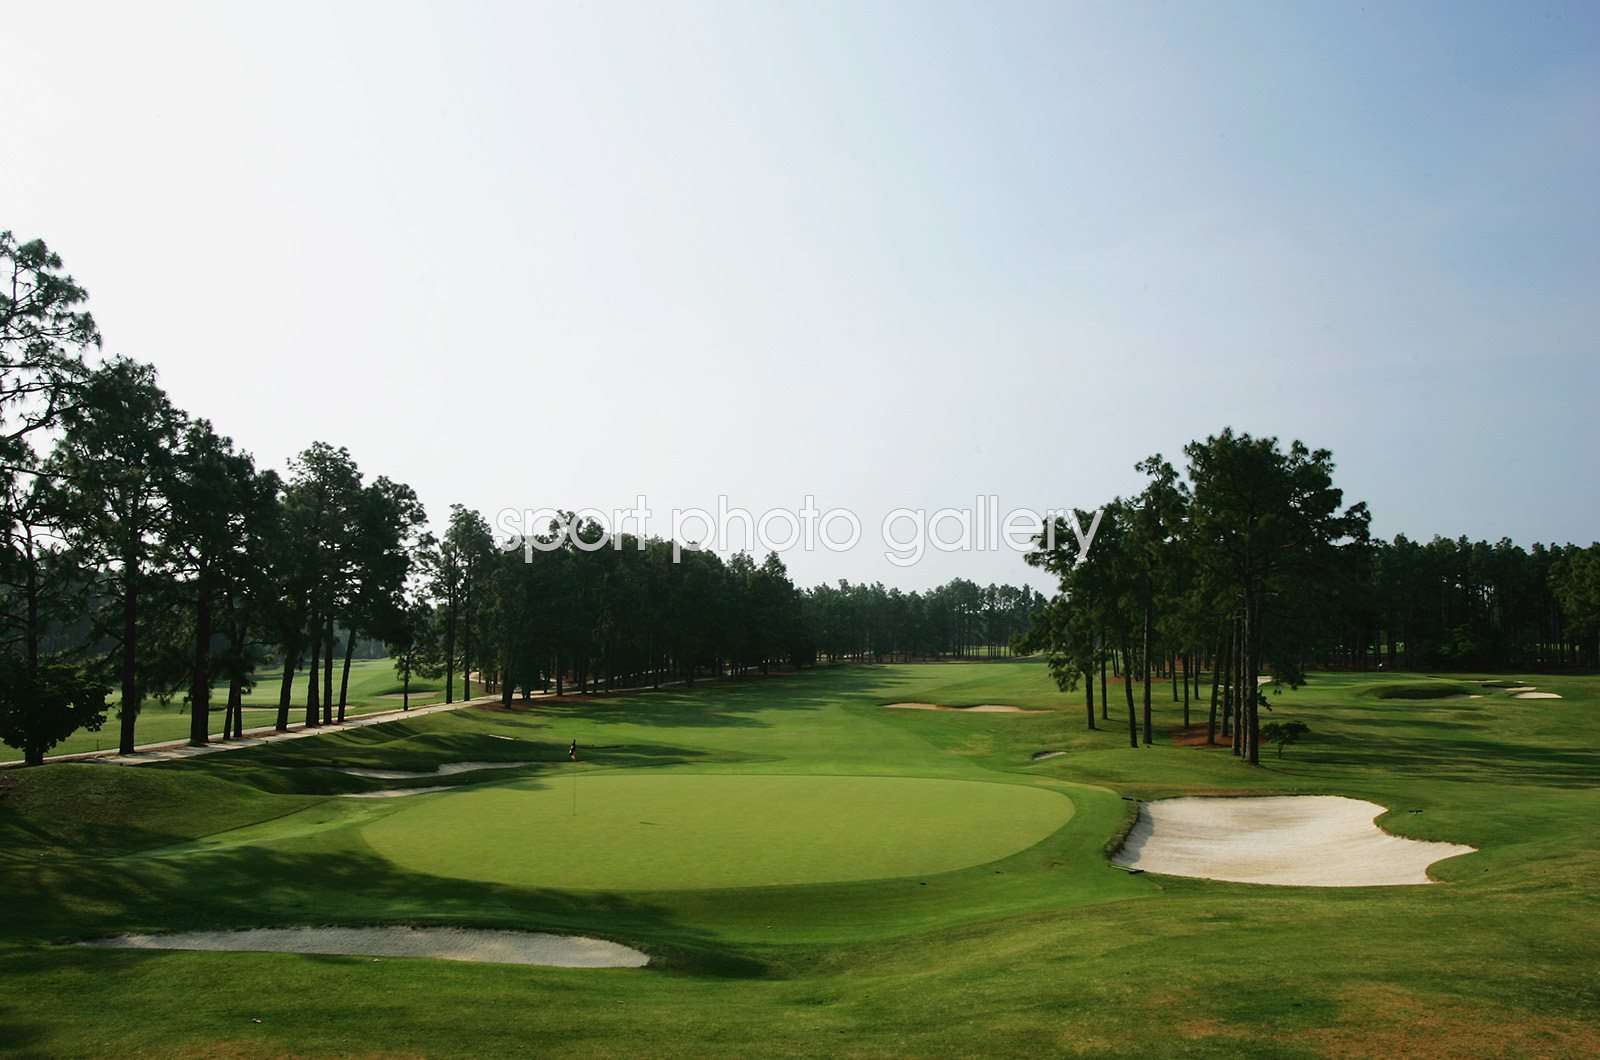 Pinehurst No 2, North Carolina 16th hole, US Open venue 2005